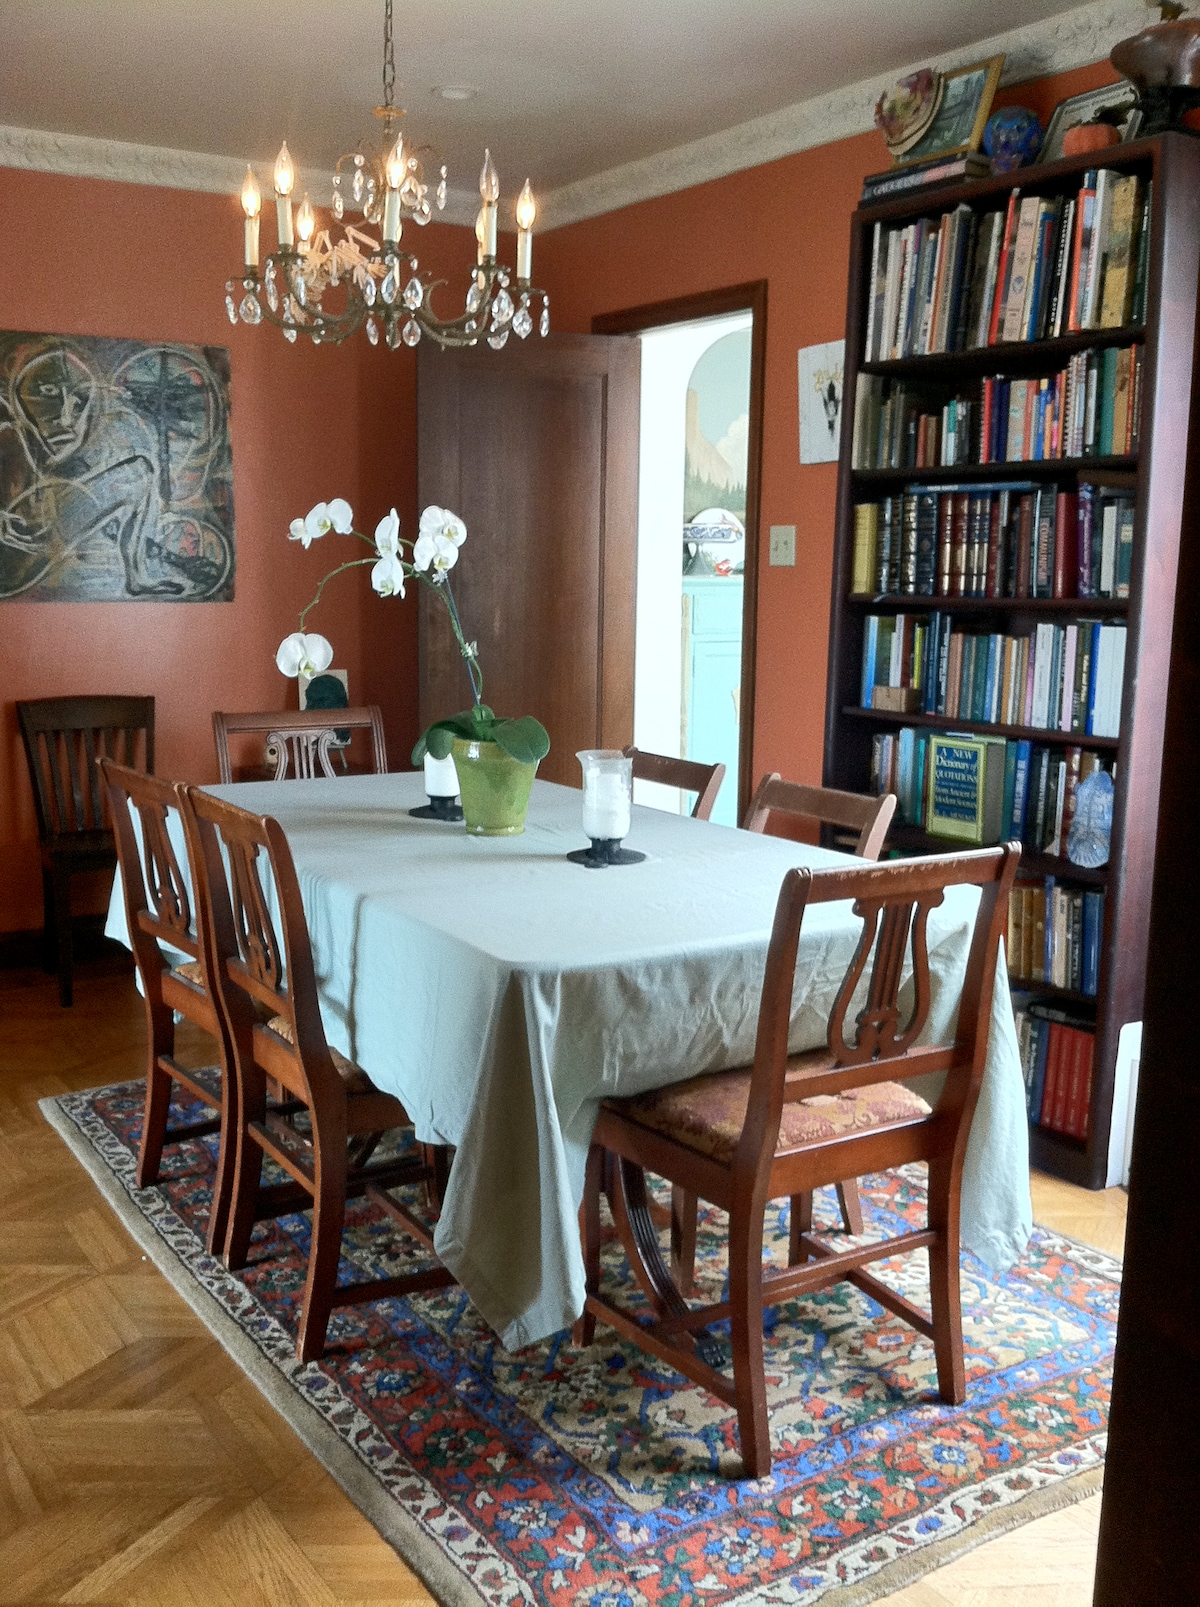 The dining room doubles as the library with an extensive selection of titles ranging from Ayn Rand to Madame Blavatsky and beyond.